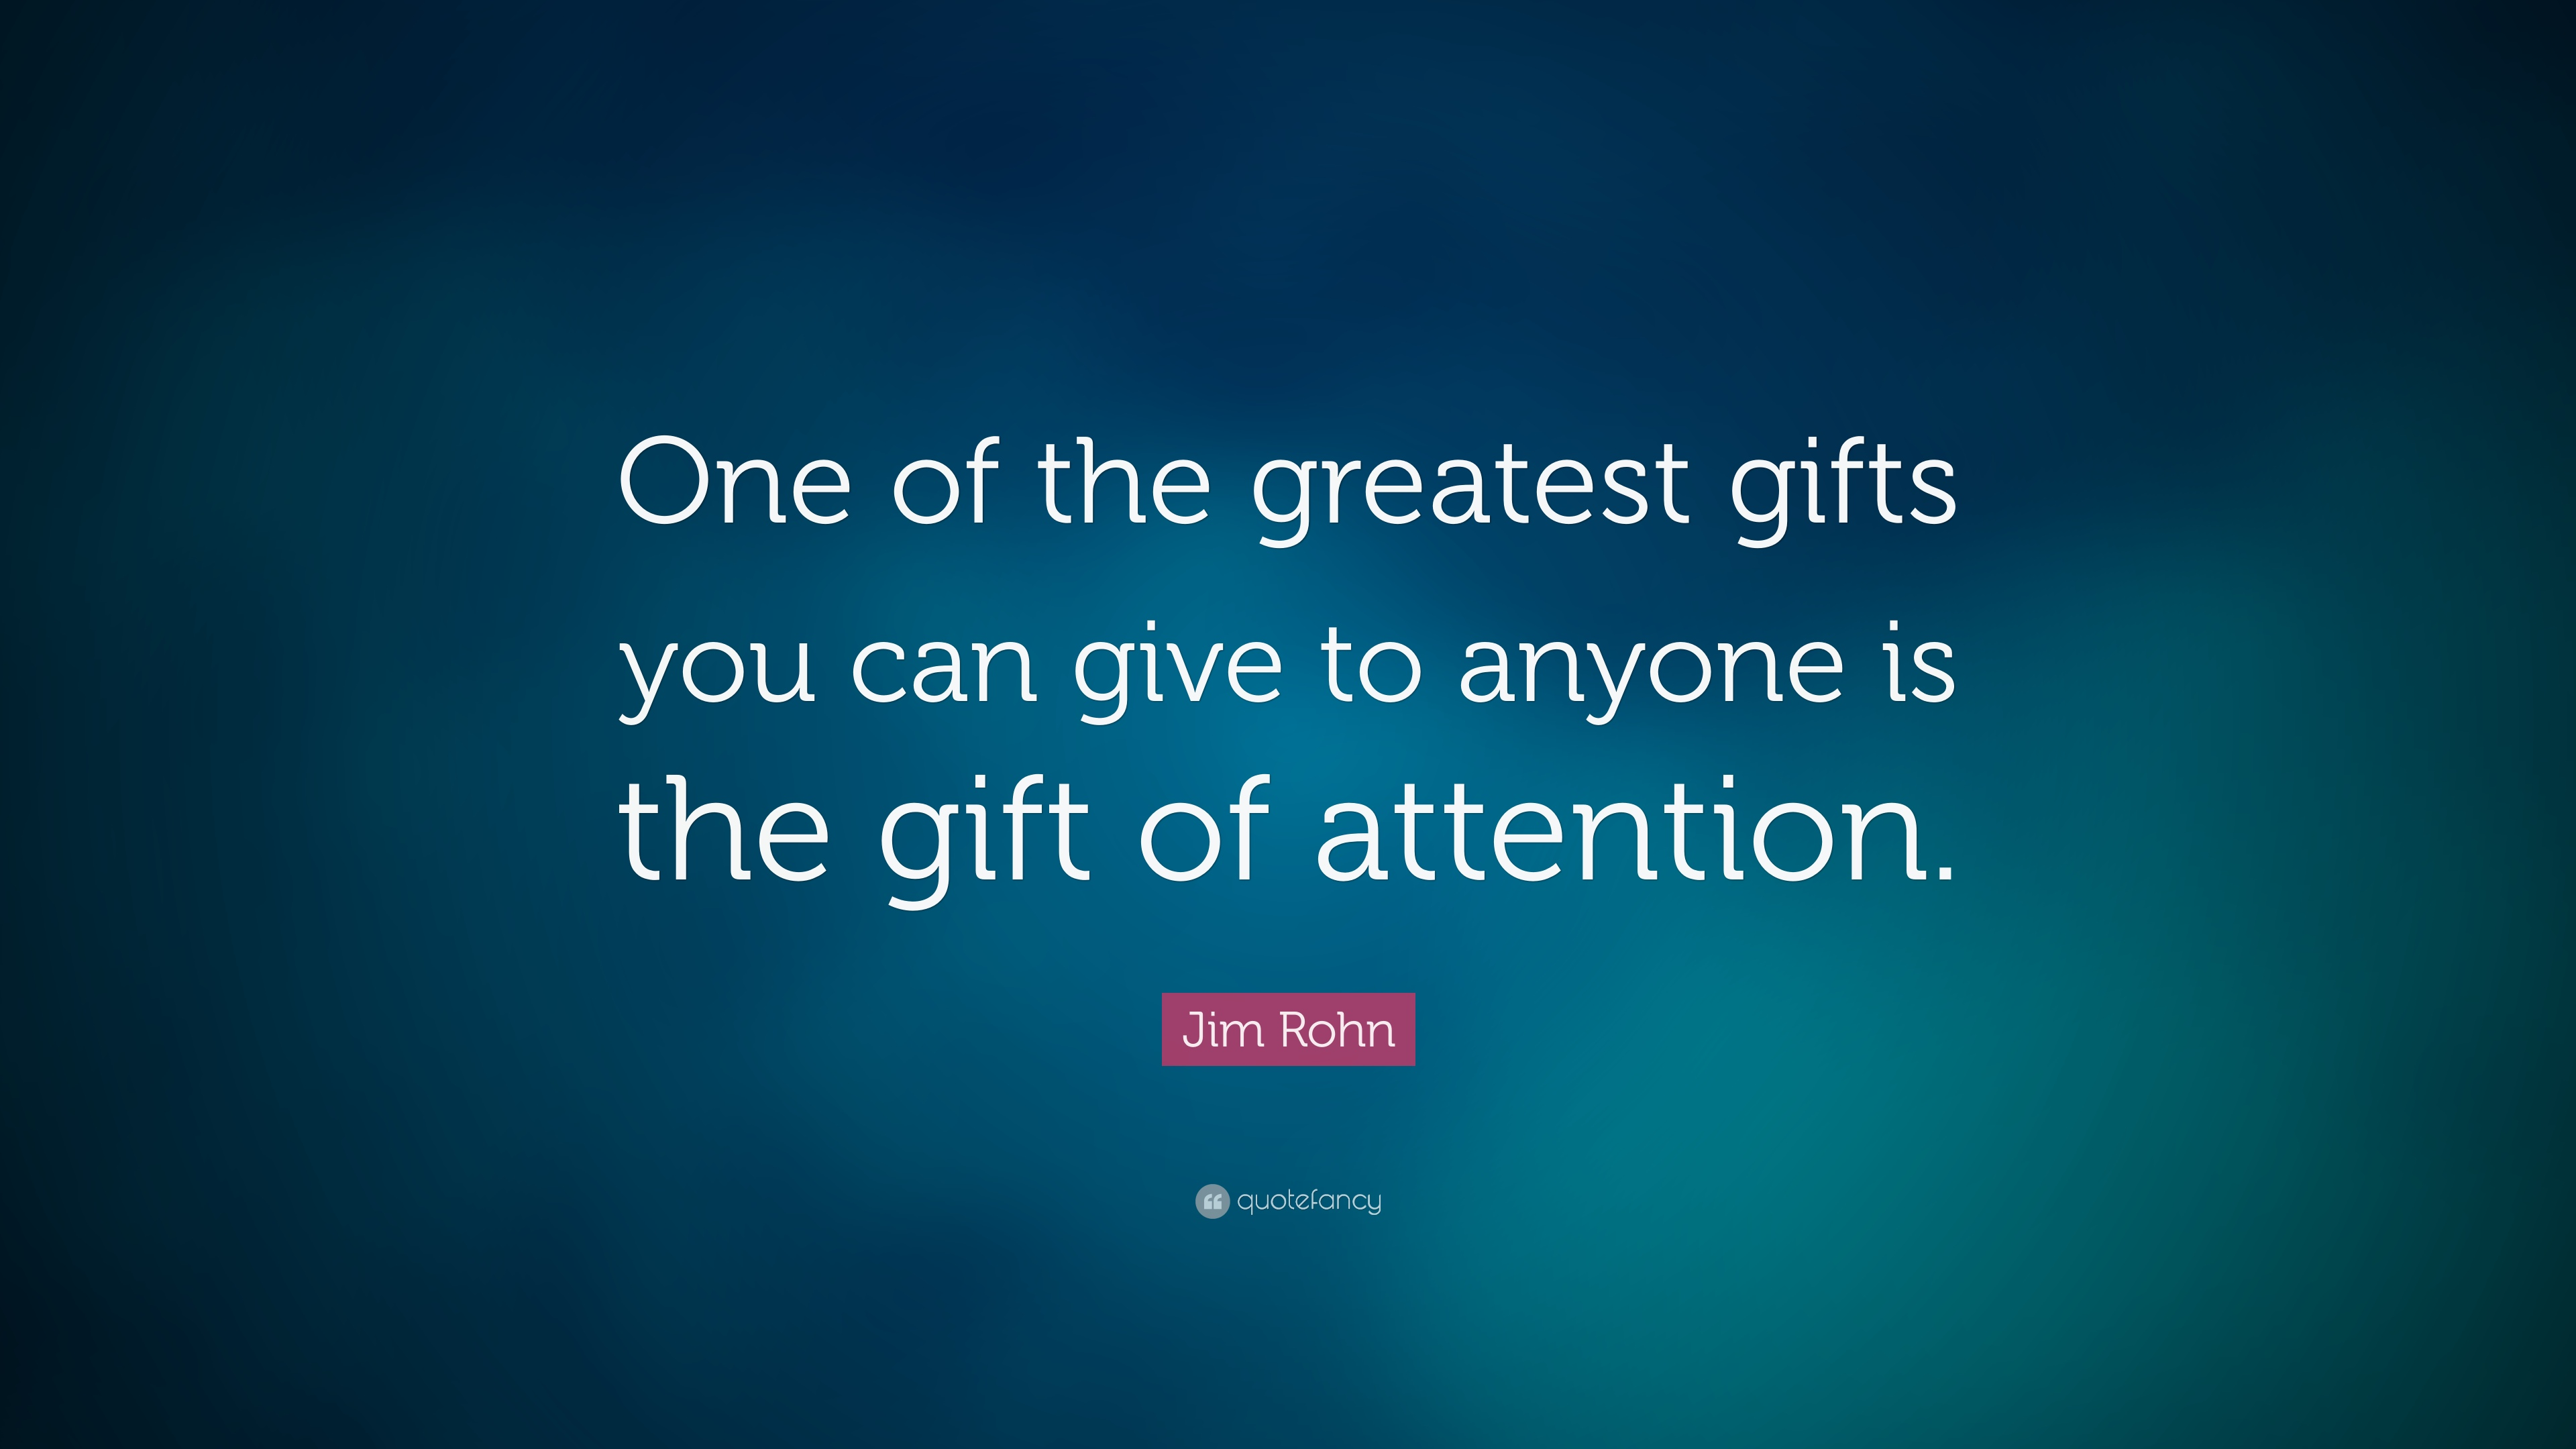 Jim rohn quote one of the greatest gifts you can give to anyone jim rohn quote one of the greatest gifts you can give to anyone is negle Choice Image